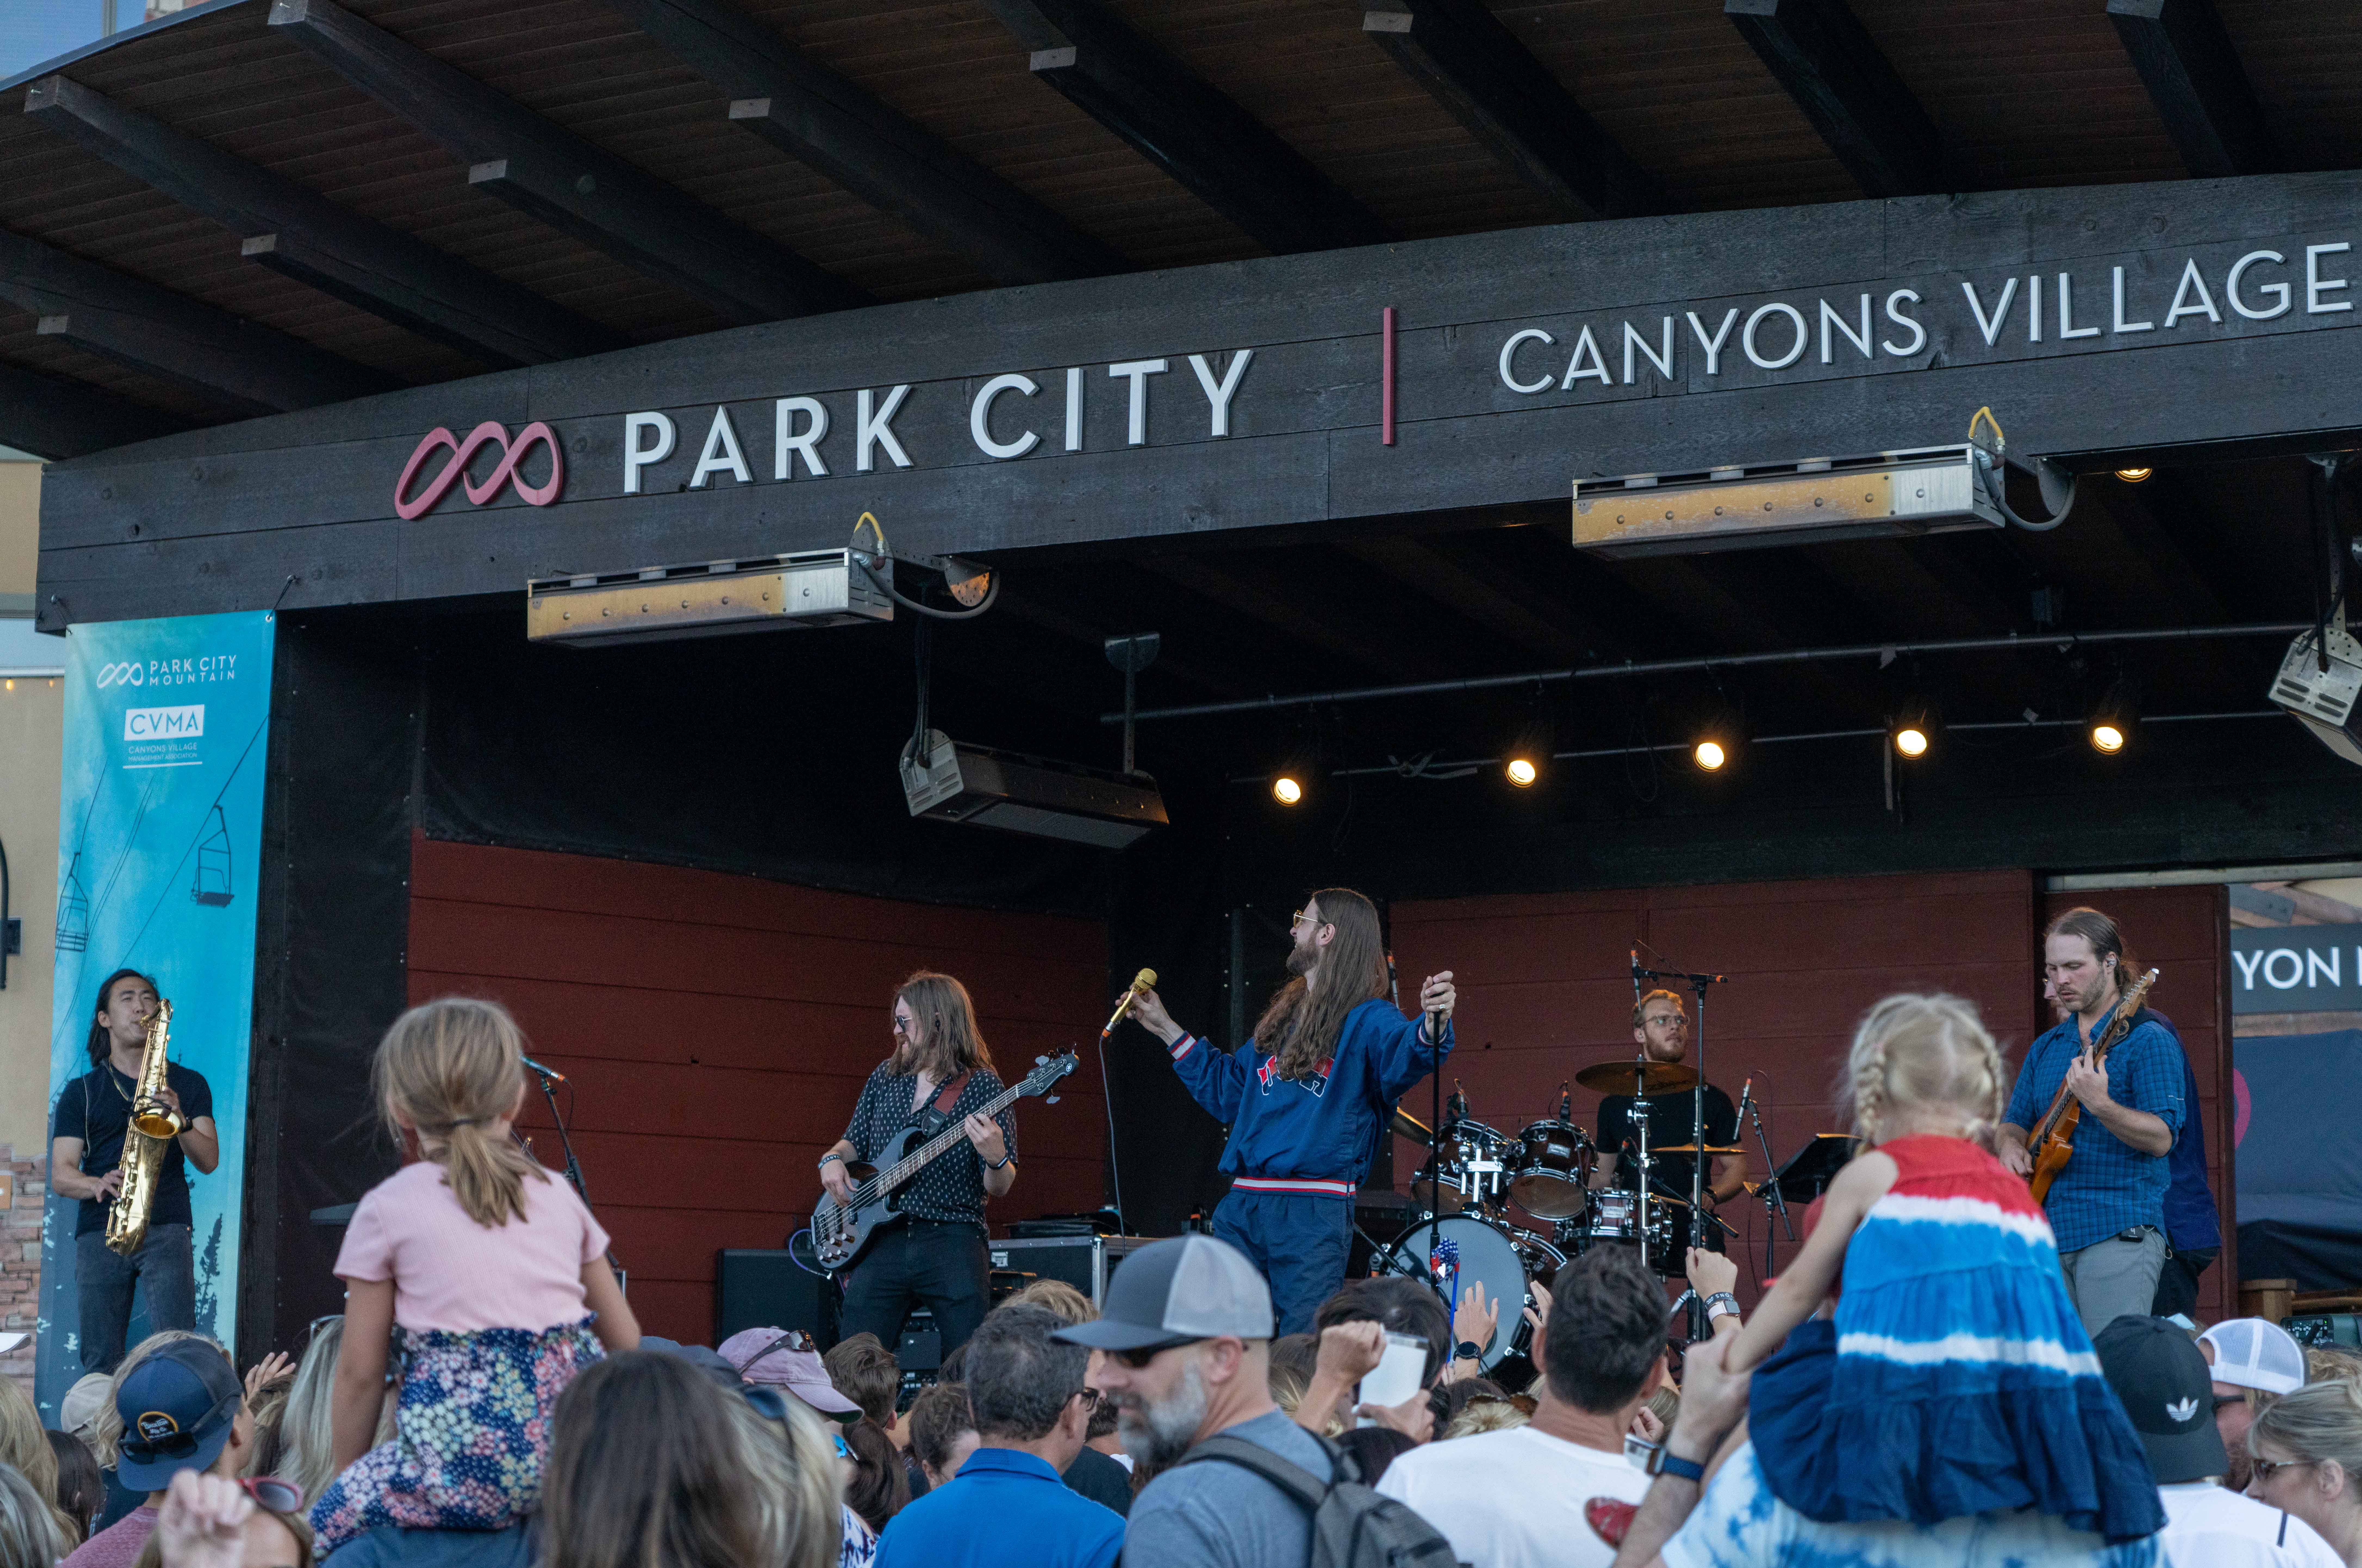 Crowds gather at Canyons Village, which hosts summer concerts in Park City